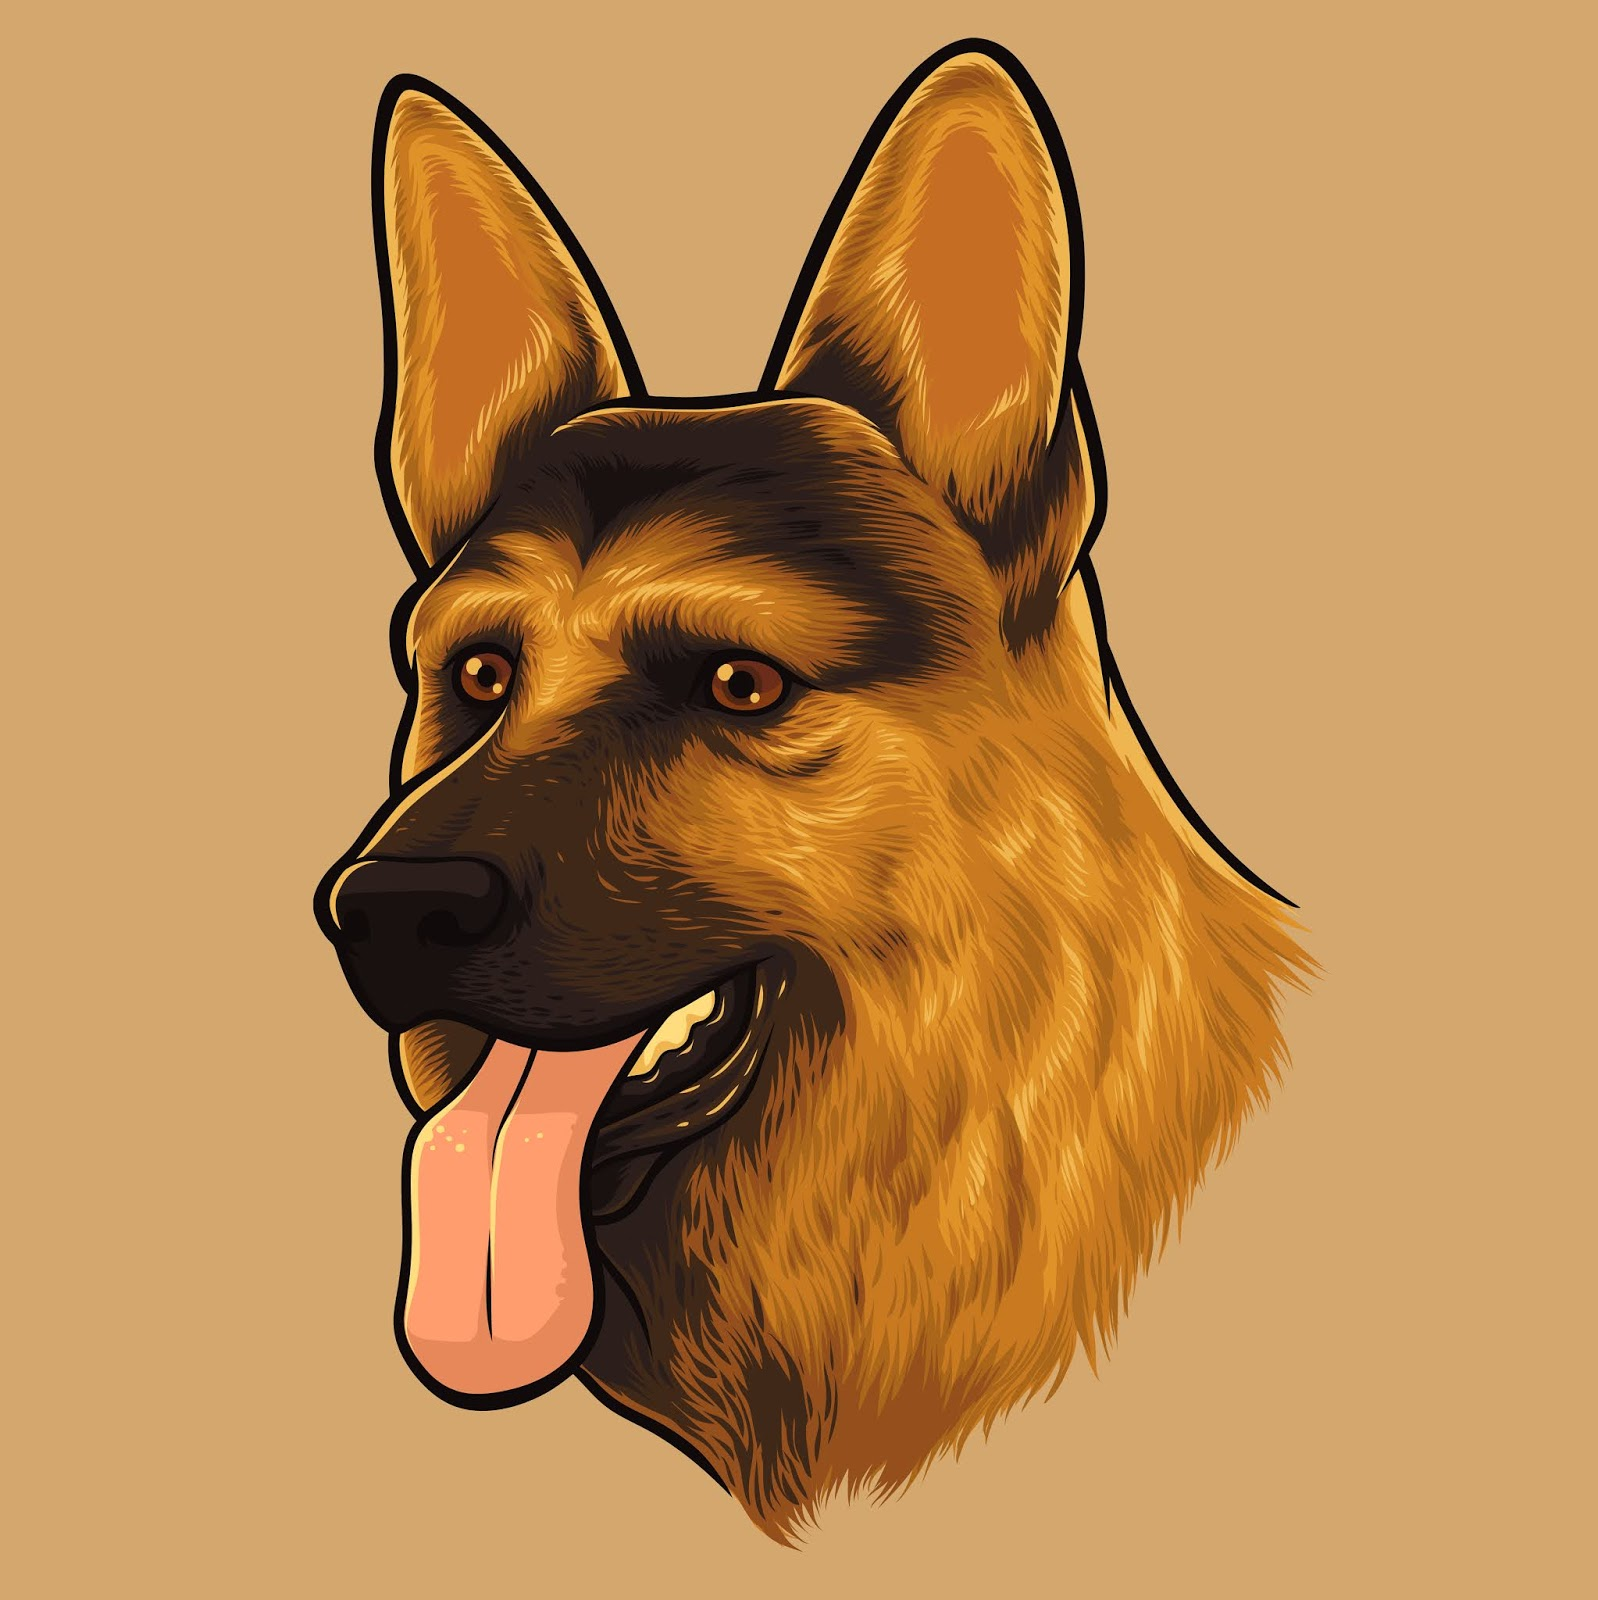 German Shepherd Dog Portrait Free Download Vector CDR, AI, EPS and PNG Formats